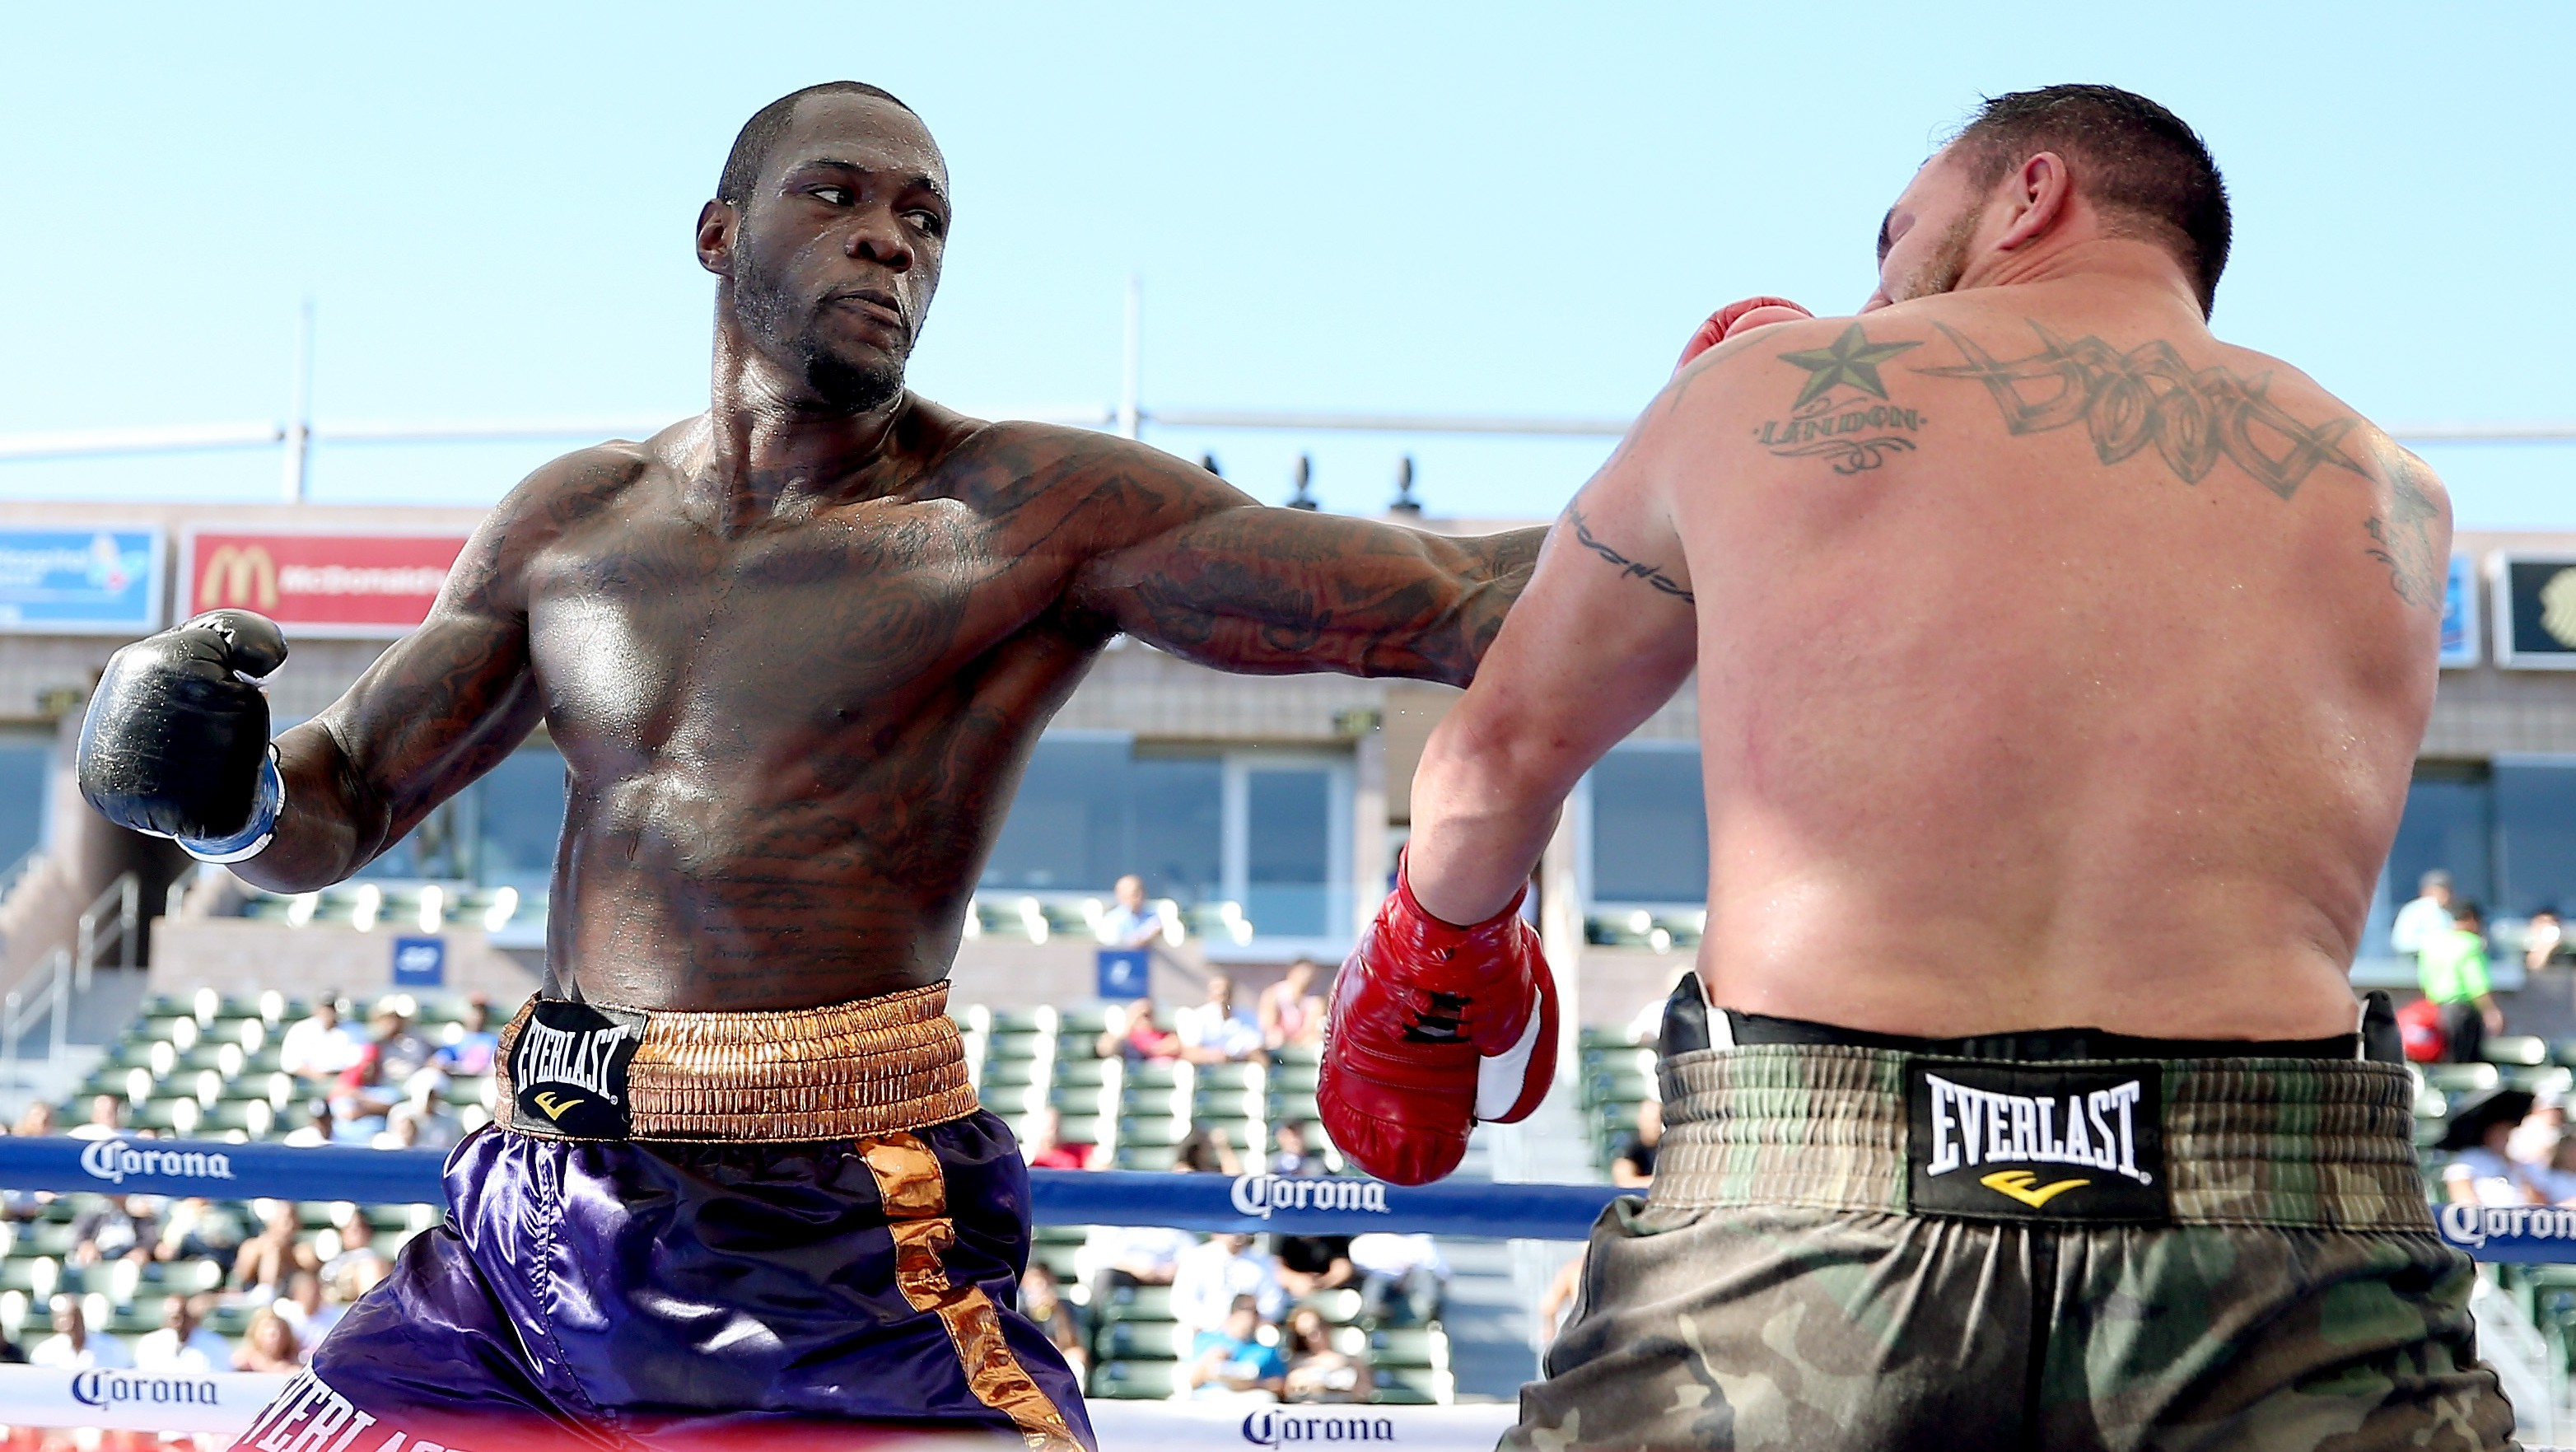 Deontay Wilder defends his title against Artur Szpilka on Saturday. (Getty)